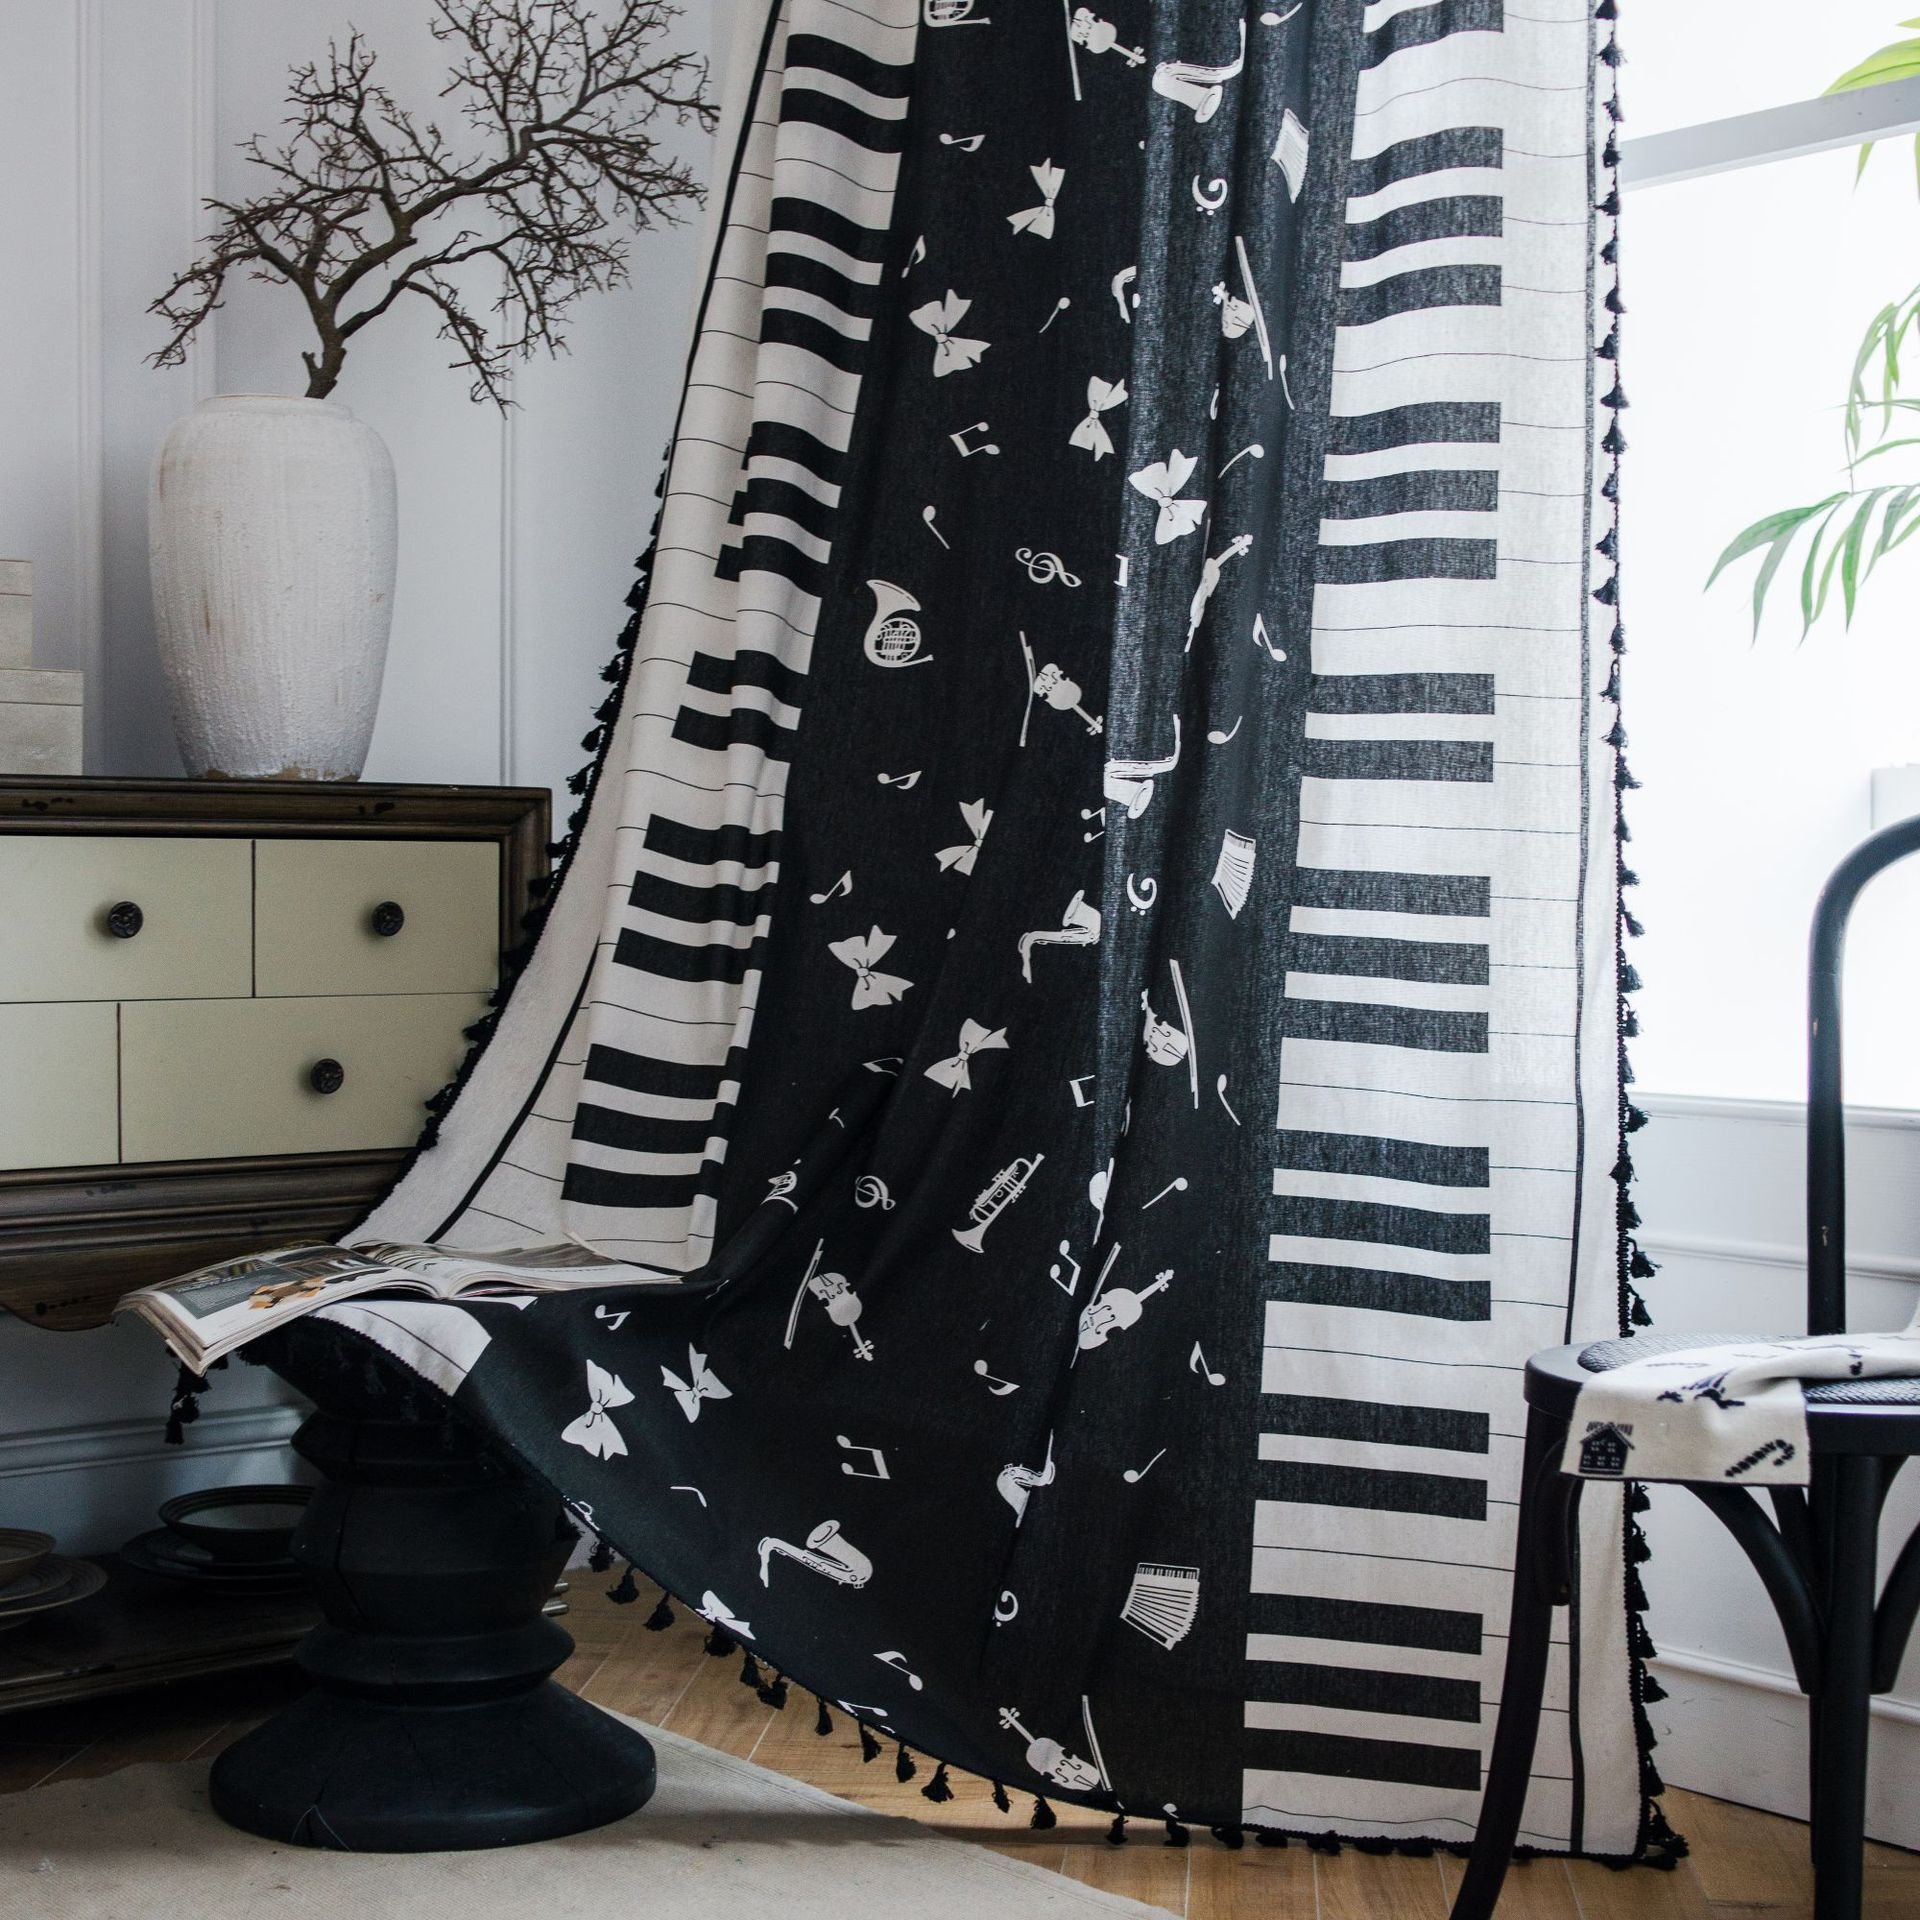 Black And White Music Piano Note Curtain For Living Room Blinds Bedroom Bay Window Cotton Linen Curtain Tulle With Tassel Curtains Aliexpress